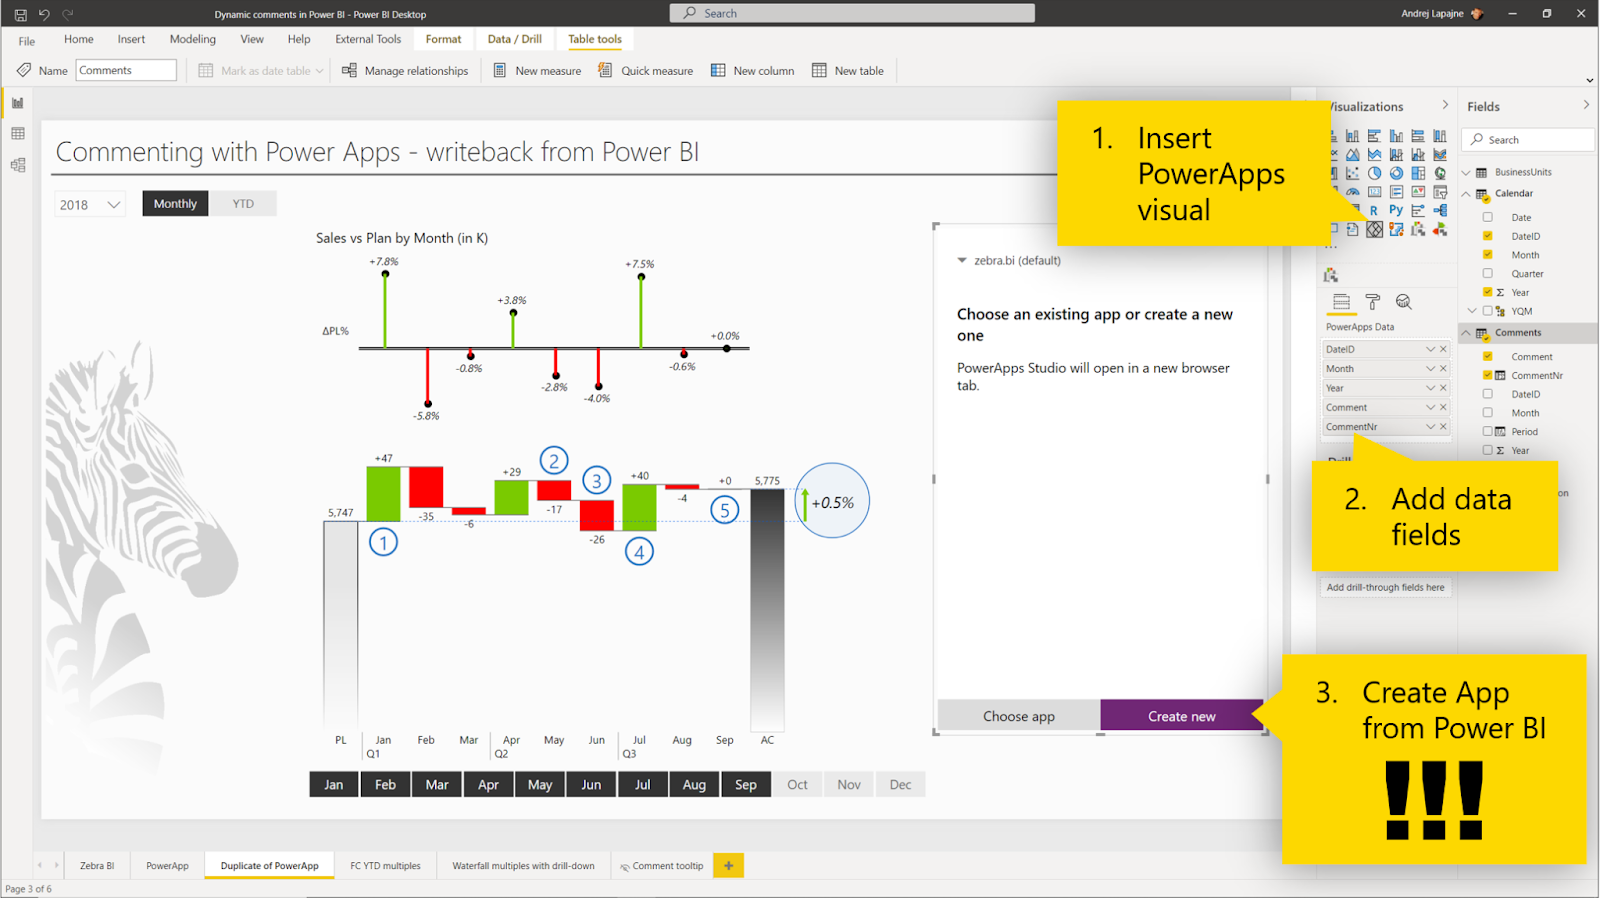 The process for creating Power apps from Power BI